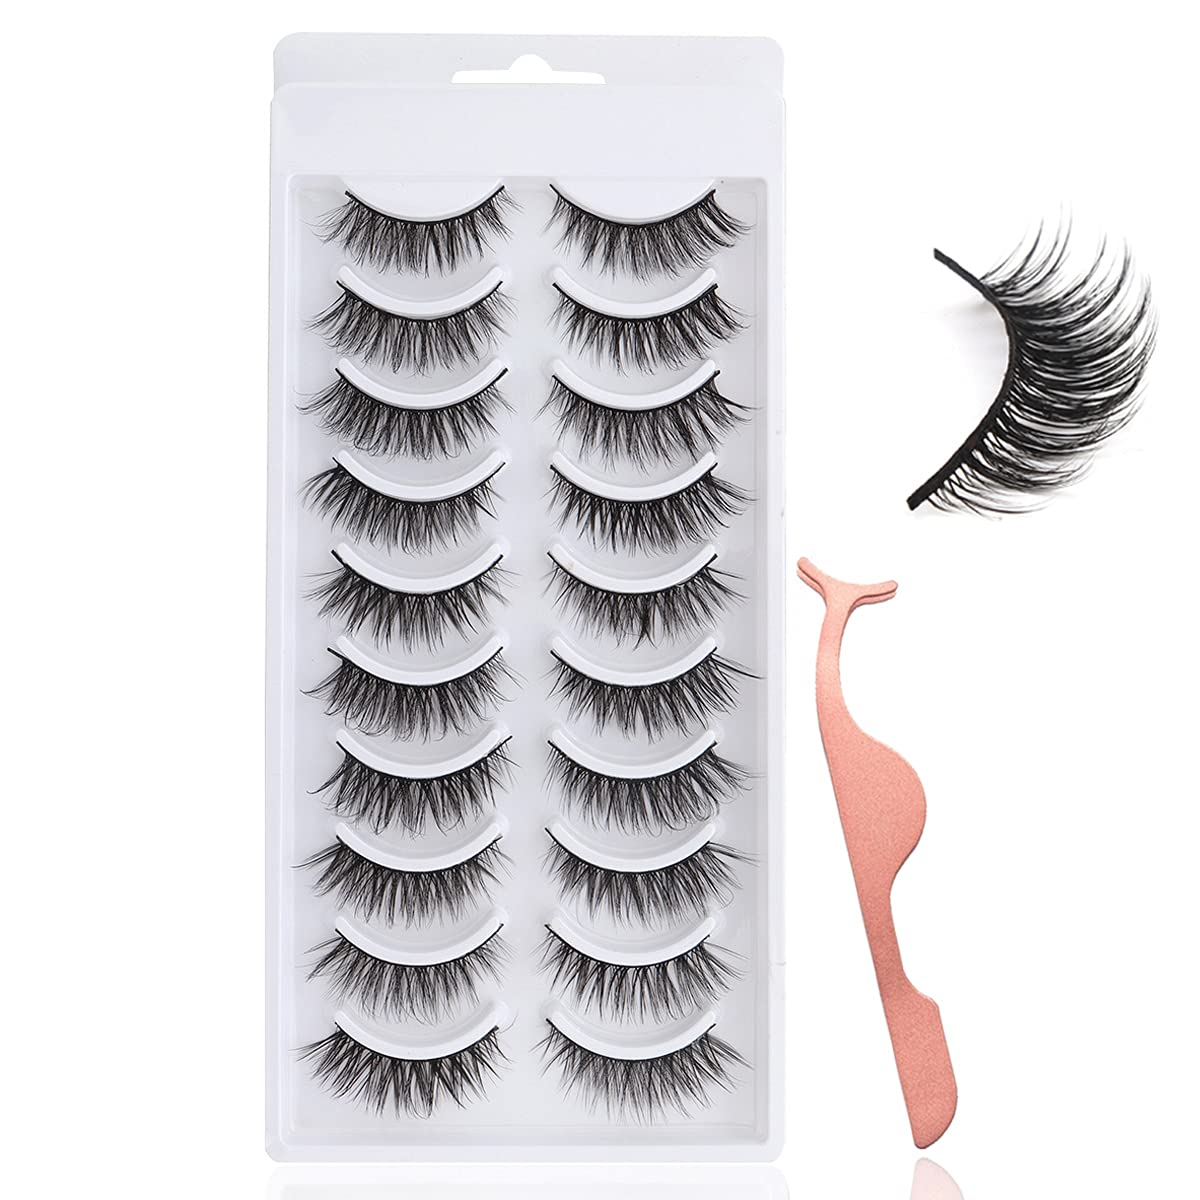 Lansteen False Eyelashes 10 Pairs 3D Classic Look V Fluffy excellence Natural Wispy